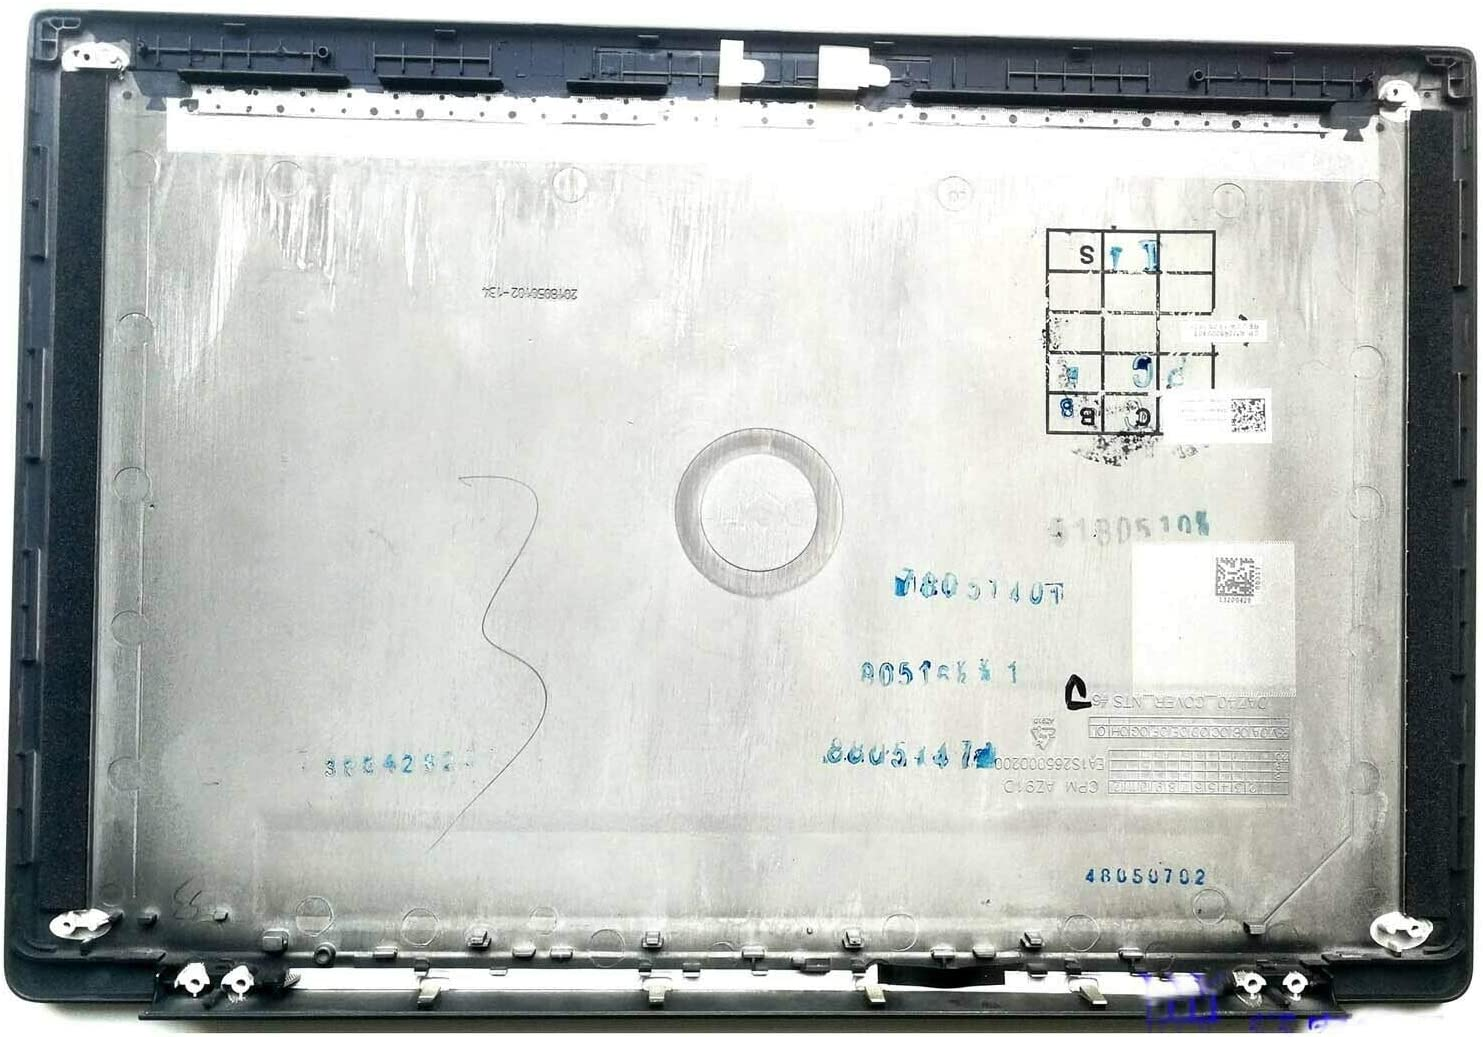 New LCD Rear Cover Top Shell Screen Shell for Dell 7480 7490 E7480 E7490 0YDH08 YDH08 Non Touch Version